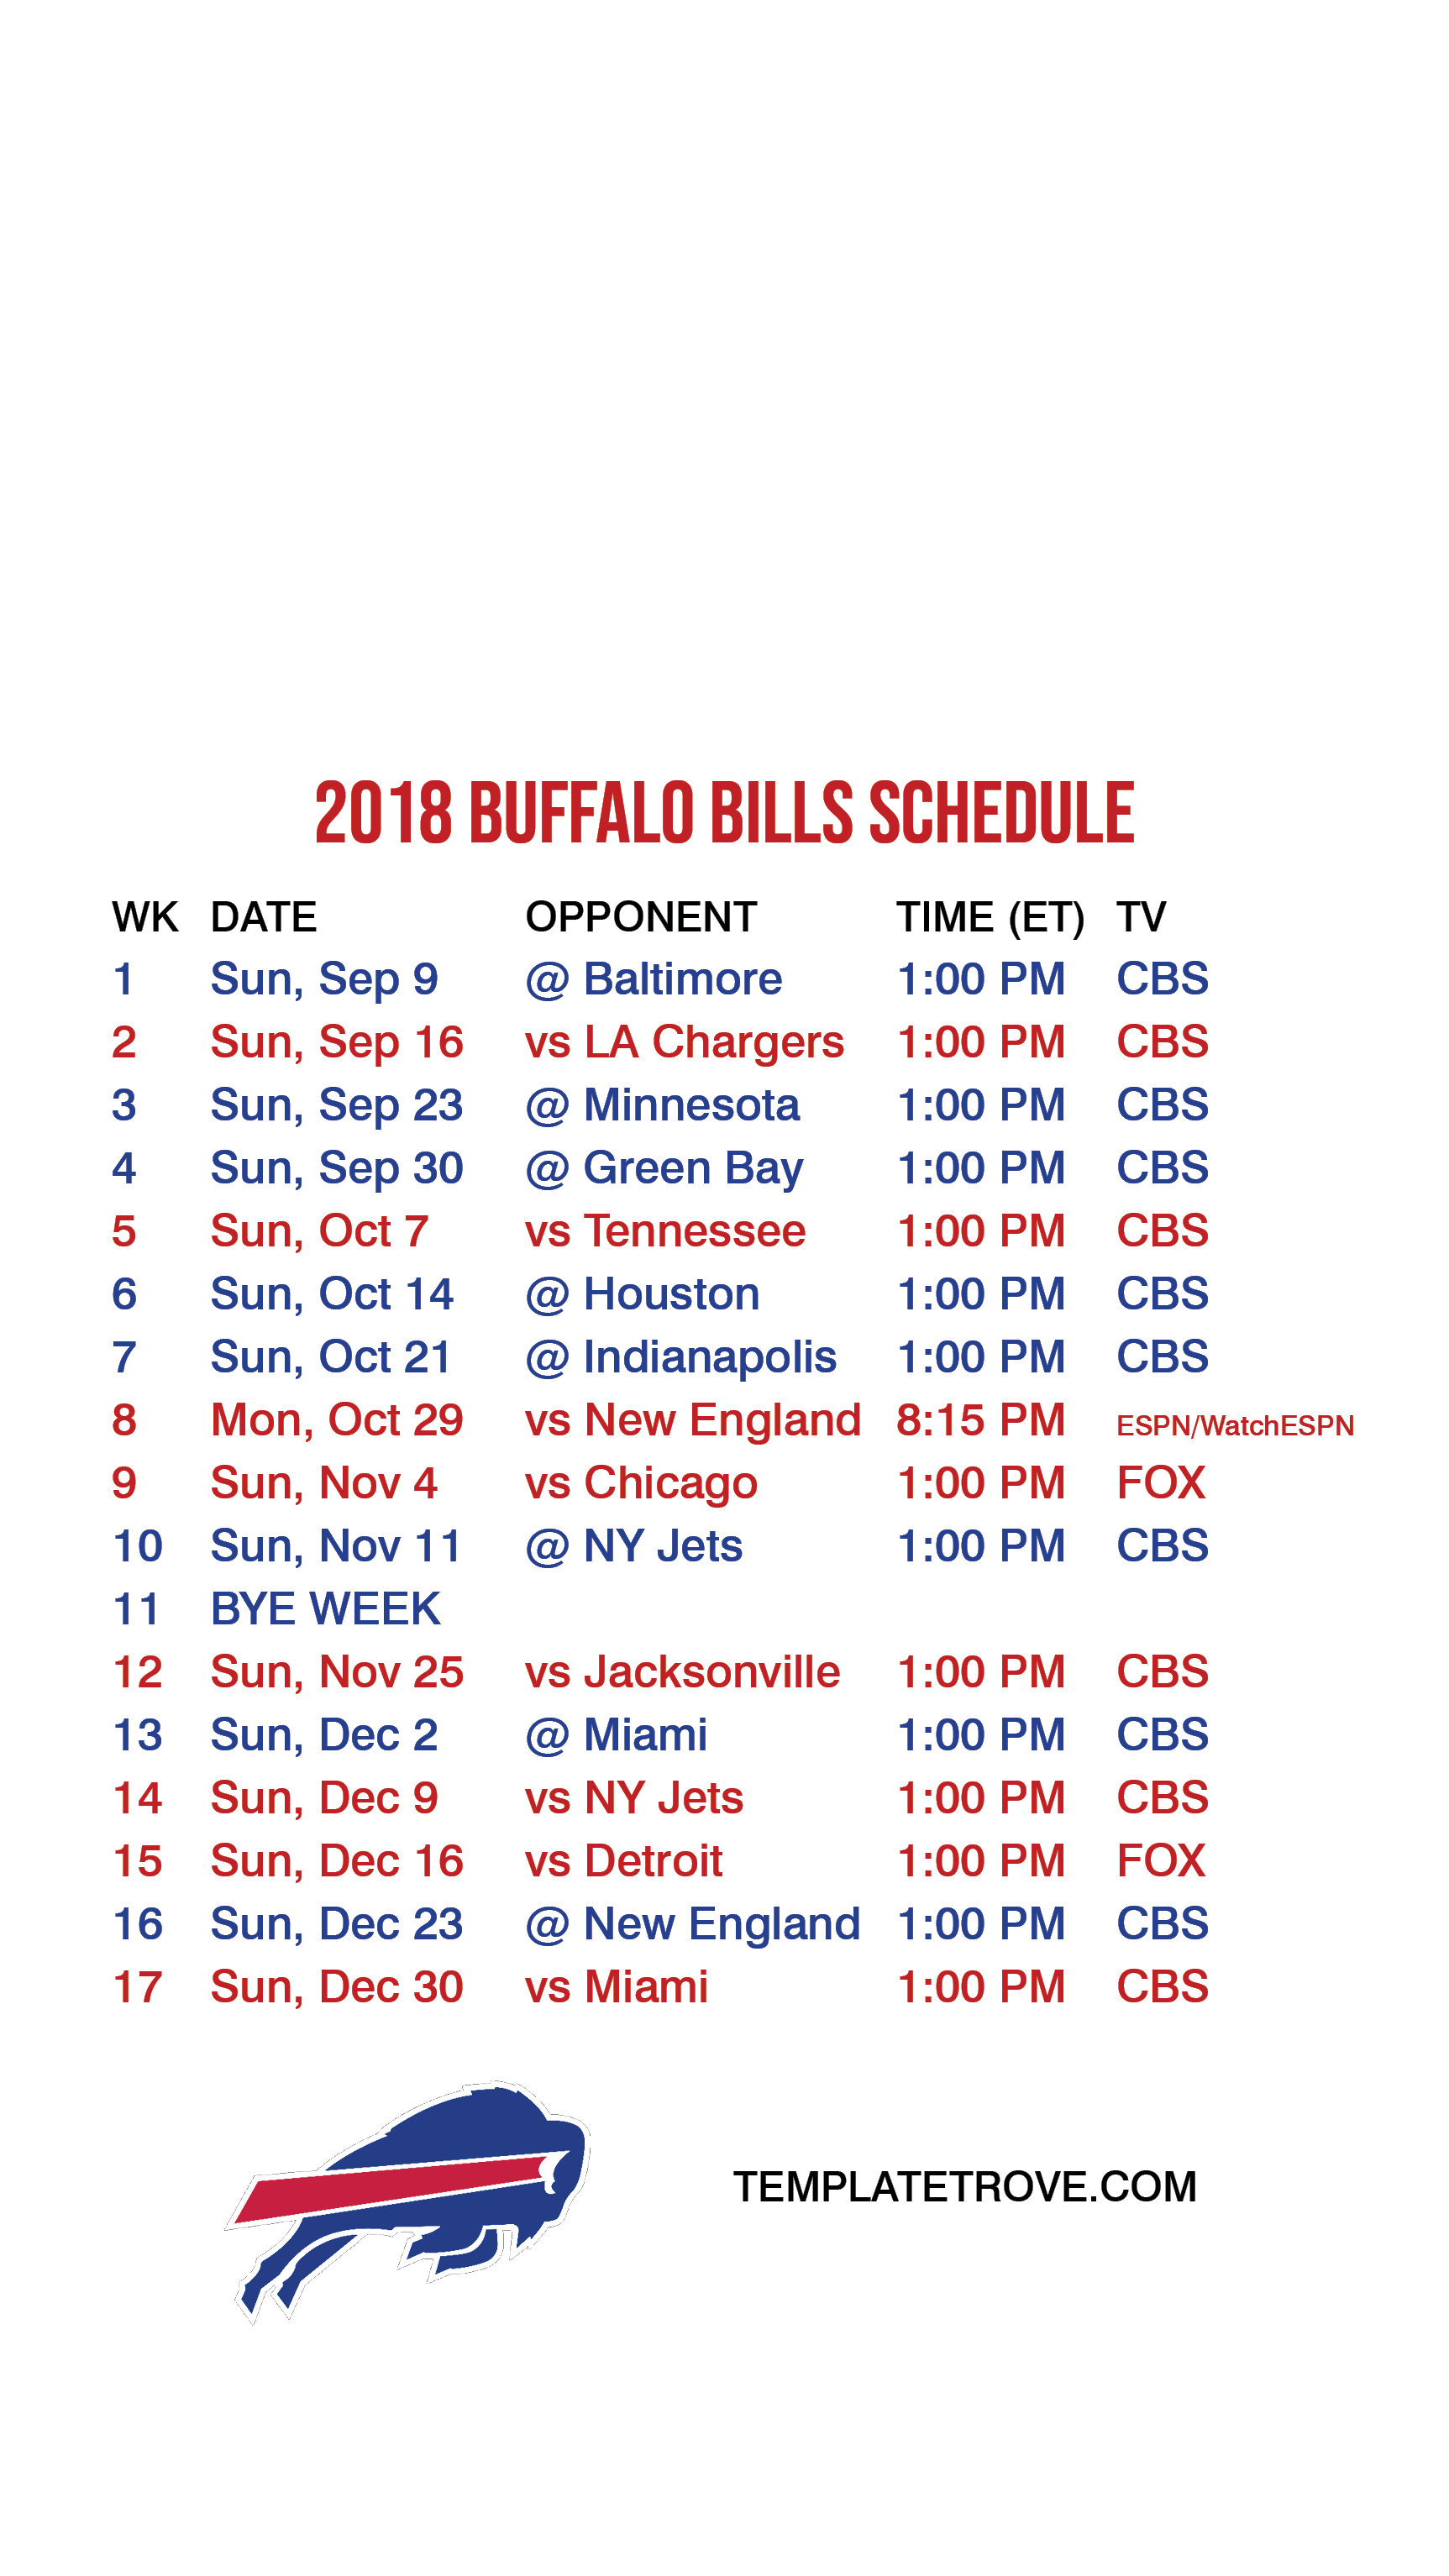 2018 2019 Buffalo Bills Lock Screen Schedule for iPhone 6 7 8 Plus 1725x3067